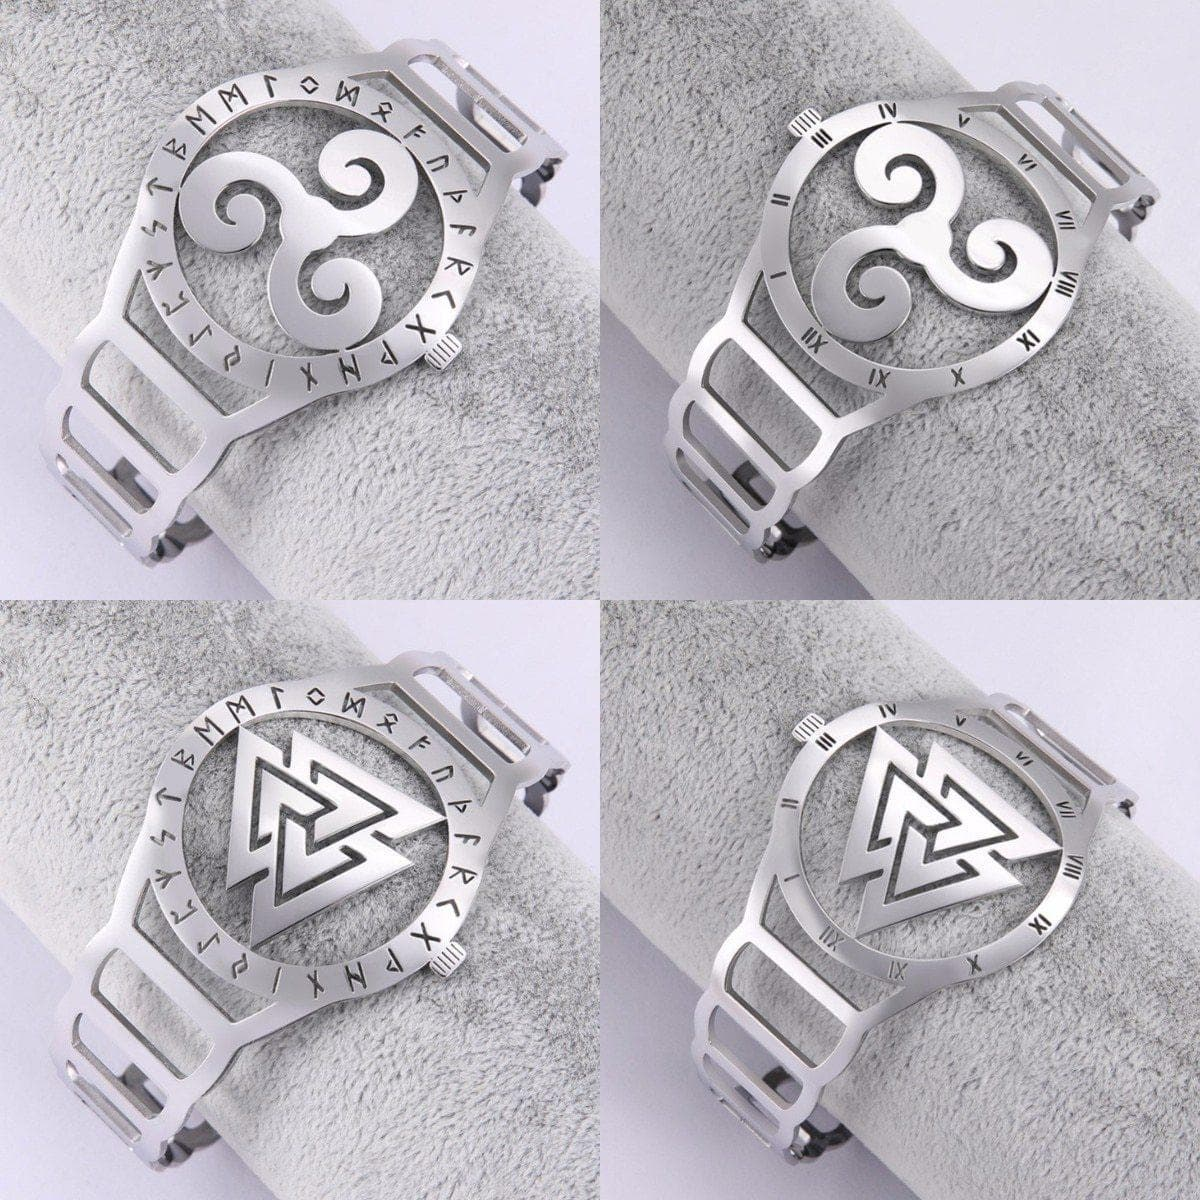 Charm Bracelets LIKGREAT Triskel Valknut Wicca Symbol Stainless Steel Bracelet Bangle for Women Men Open Cuff Bracelets Watch Shape Jewelry Gift|Charm Bracelets| Ancient Treasures Ancientreasures Viking Odin Thor Mjolnir Celtic Ancient Egypt Norse Norse Mythology